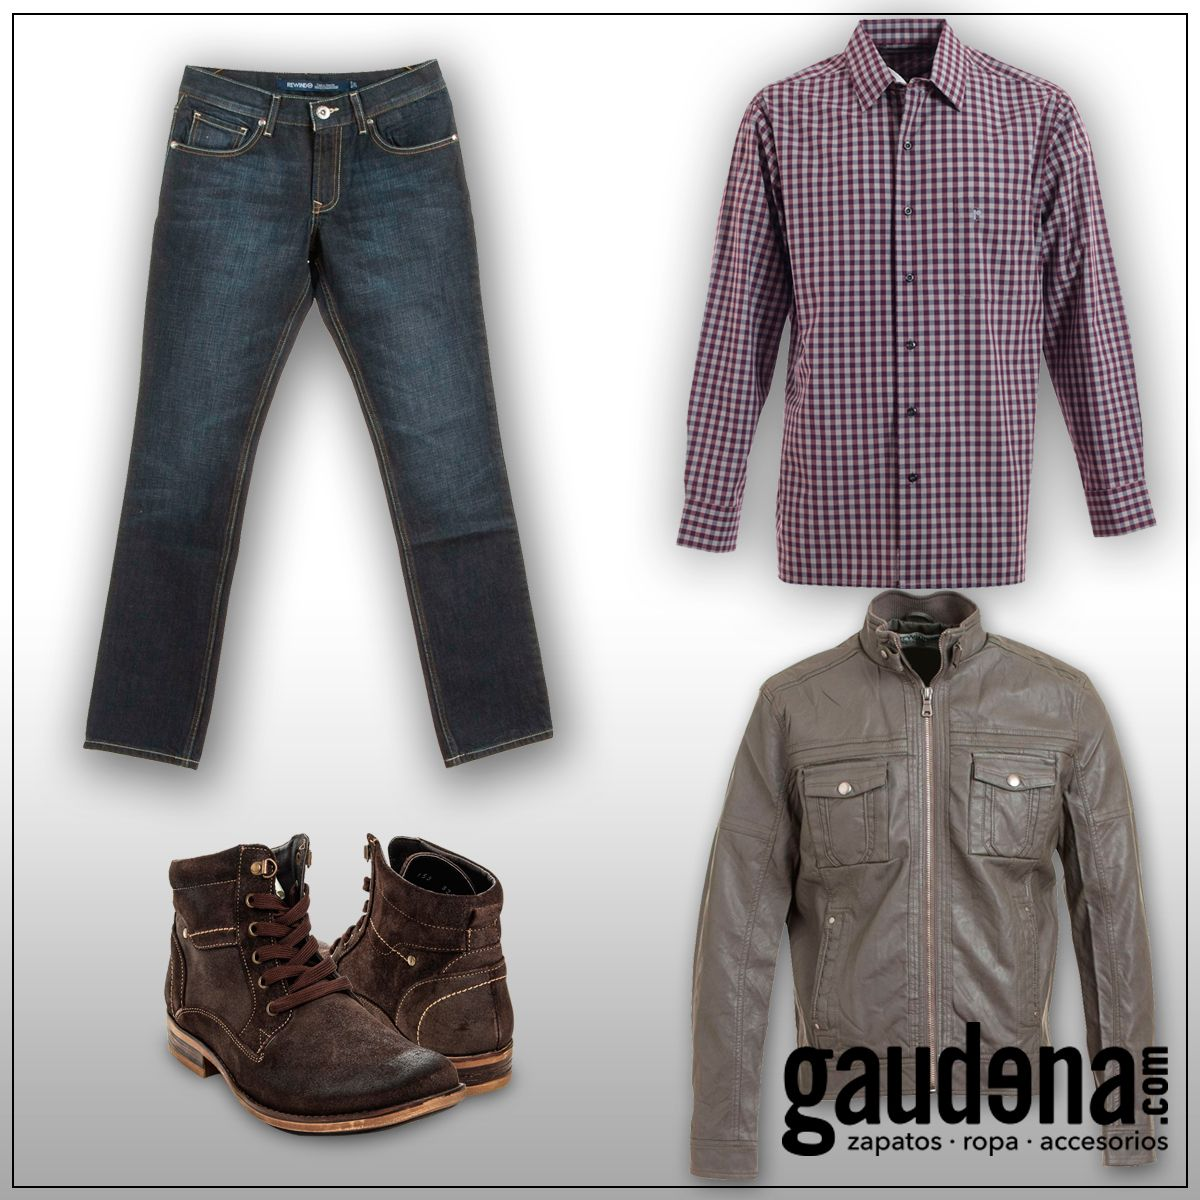 #moda #look #outfit #denim #boots #casual #plaids #hombre